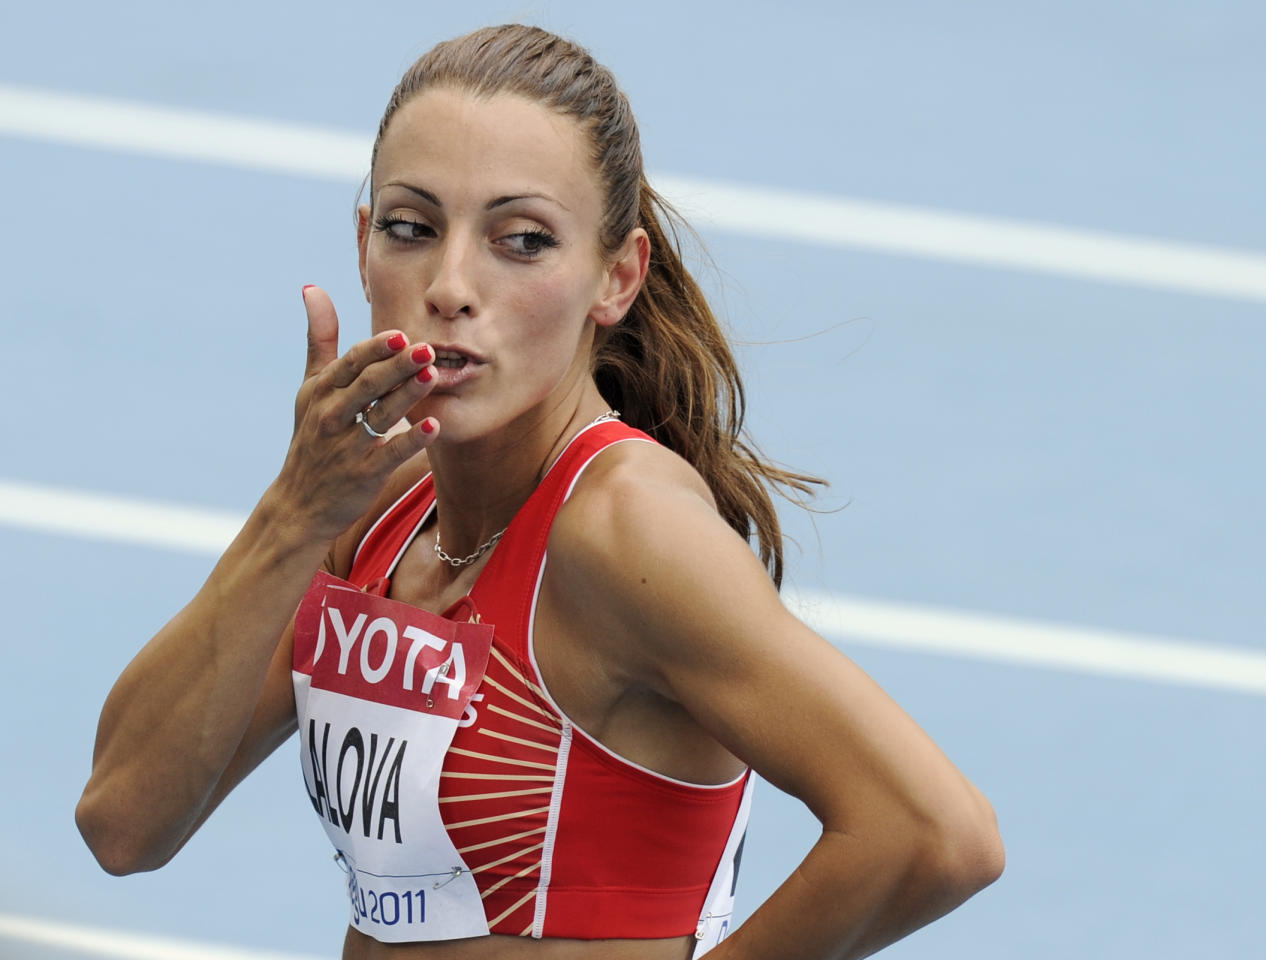 Bulgaria's Ivet Lalova gestures after qualifying for the Women's 100m following a heat at the World Athletics Championships in Daegu, South Korea, Sunday, Aug. 28, 2011. (AP Photo/Martin Meissner)